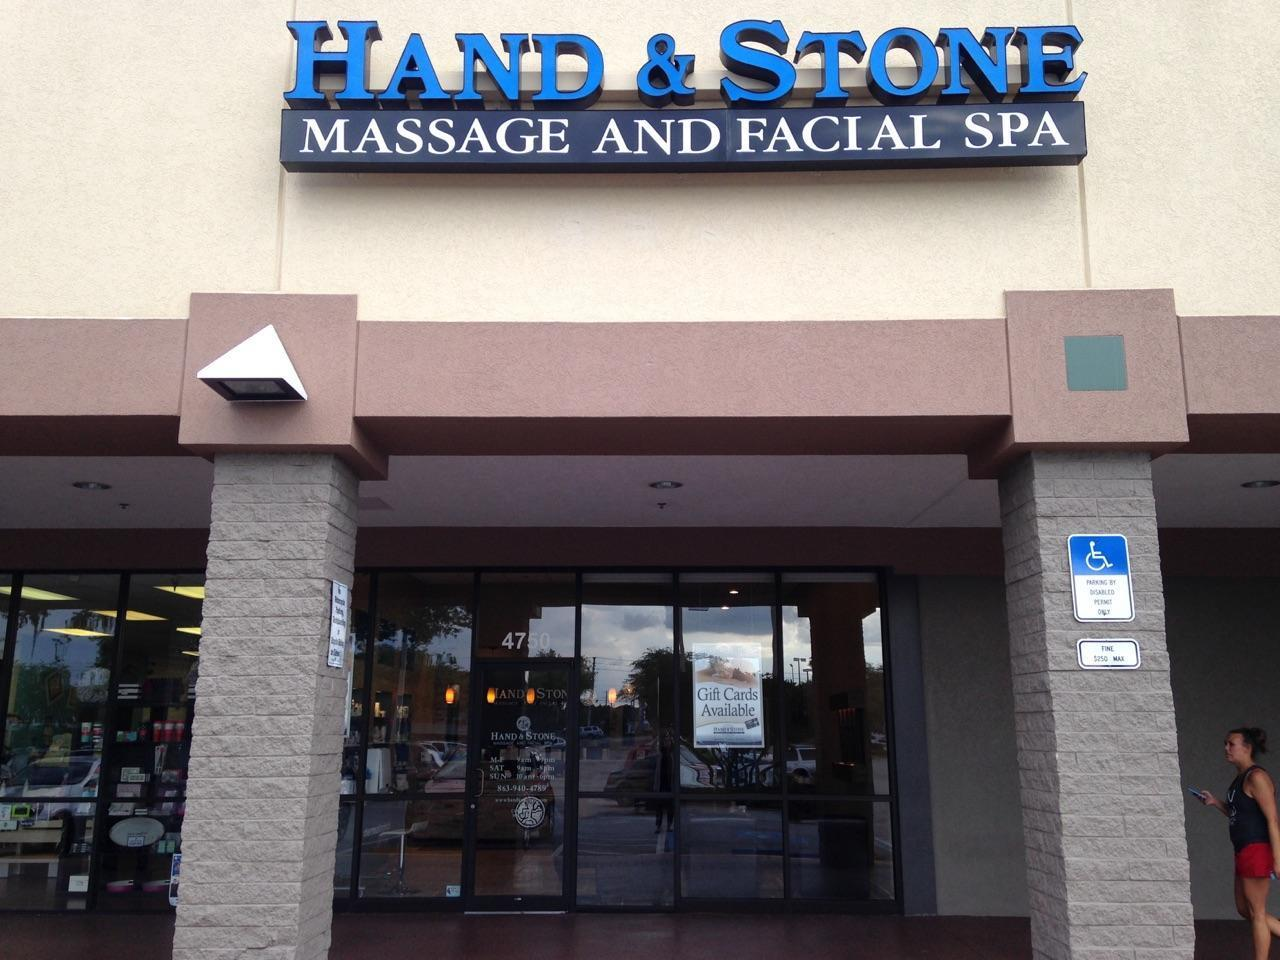 Hand and Stone Massage and Facial Spa Lakeland Florida